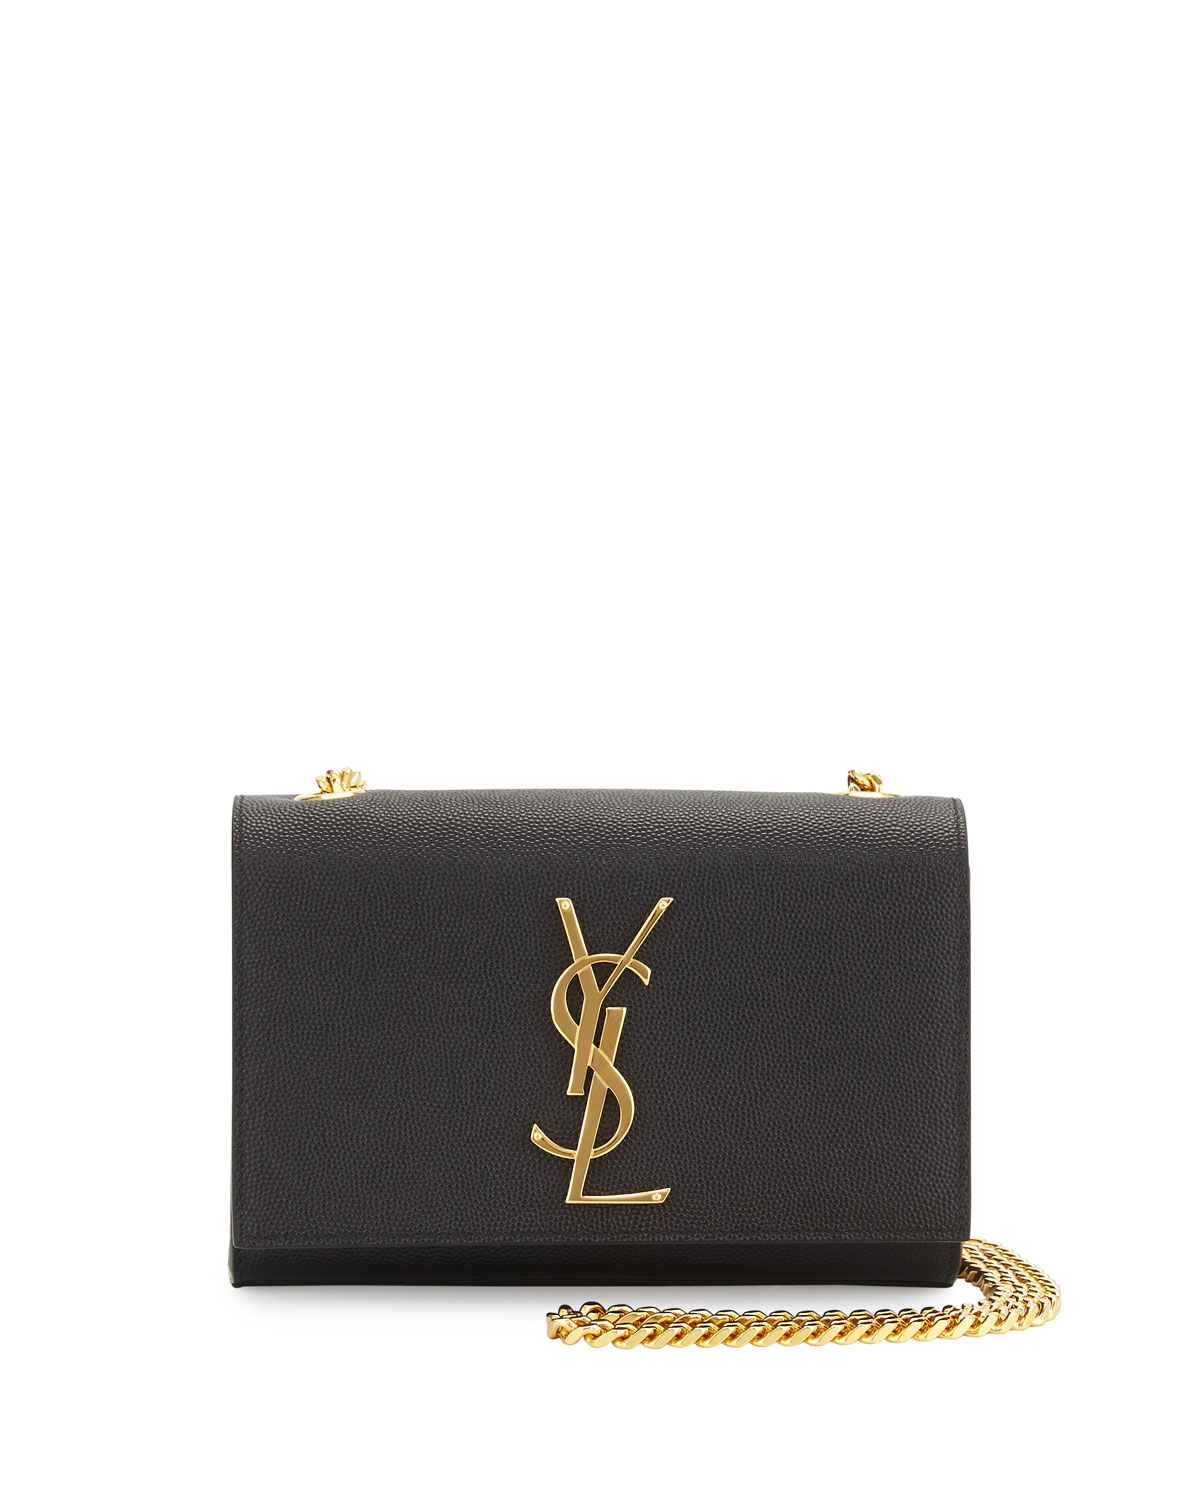 09239e45a091 Saint Laurent Kate Monogram YSL Leather Crossbody Bag